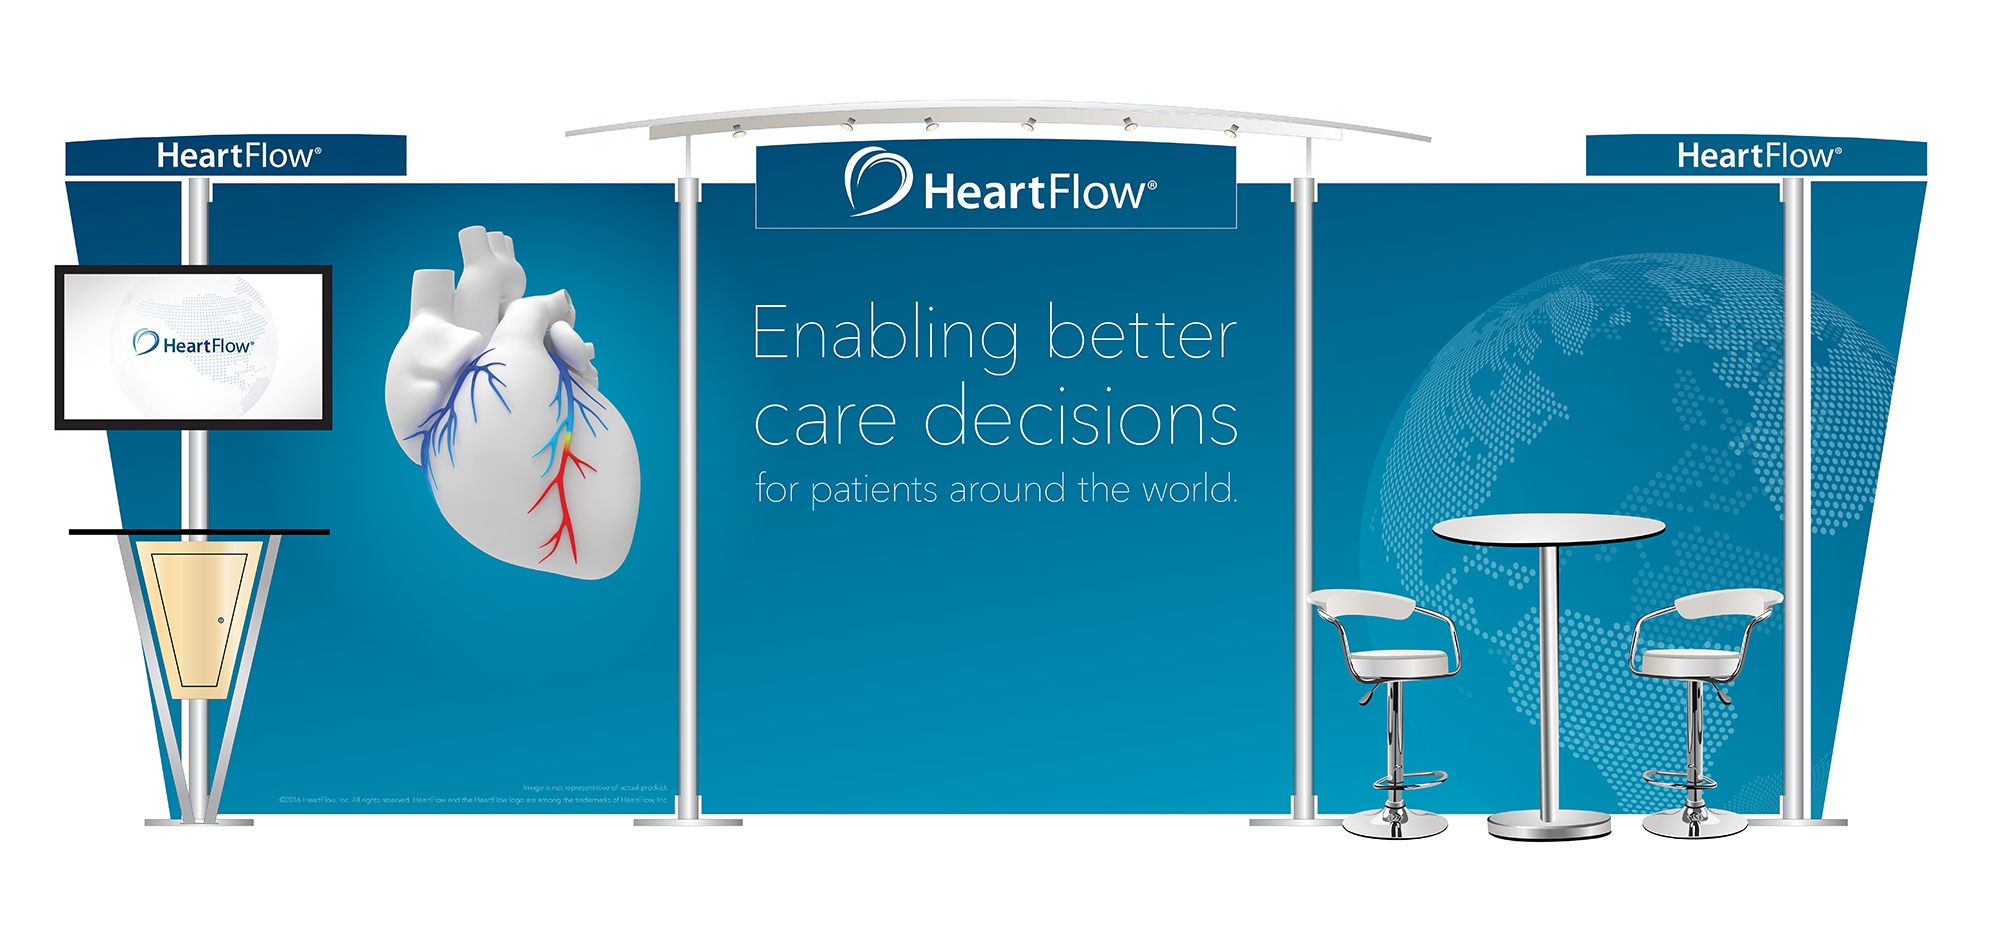 Heartflow trade show booth design